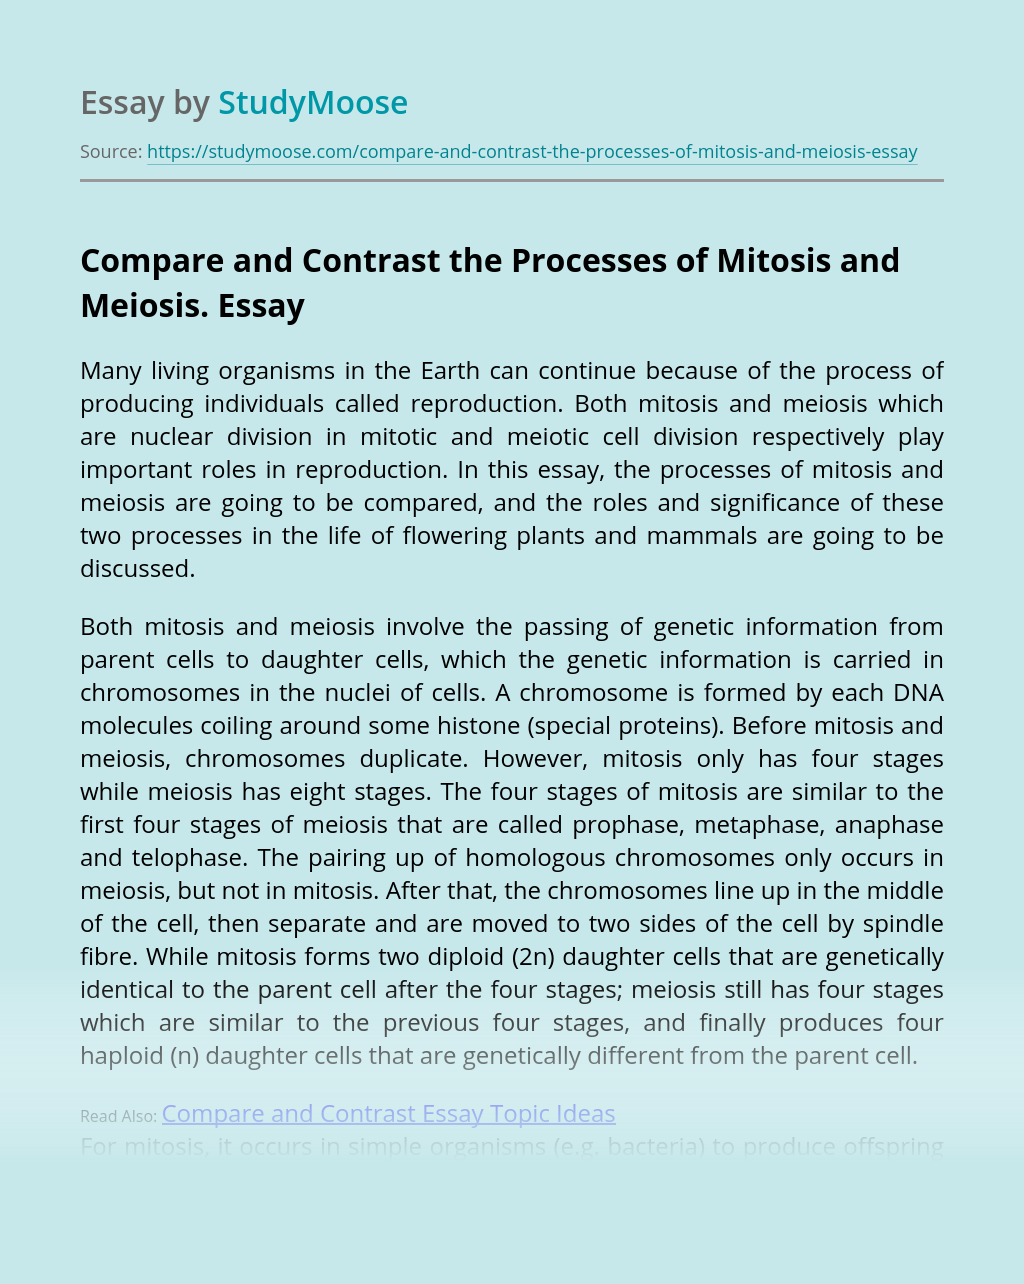 Compare and Contrast the Processes of Mitosis and Meiosis.